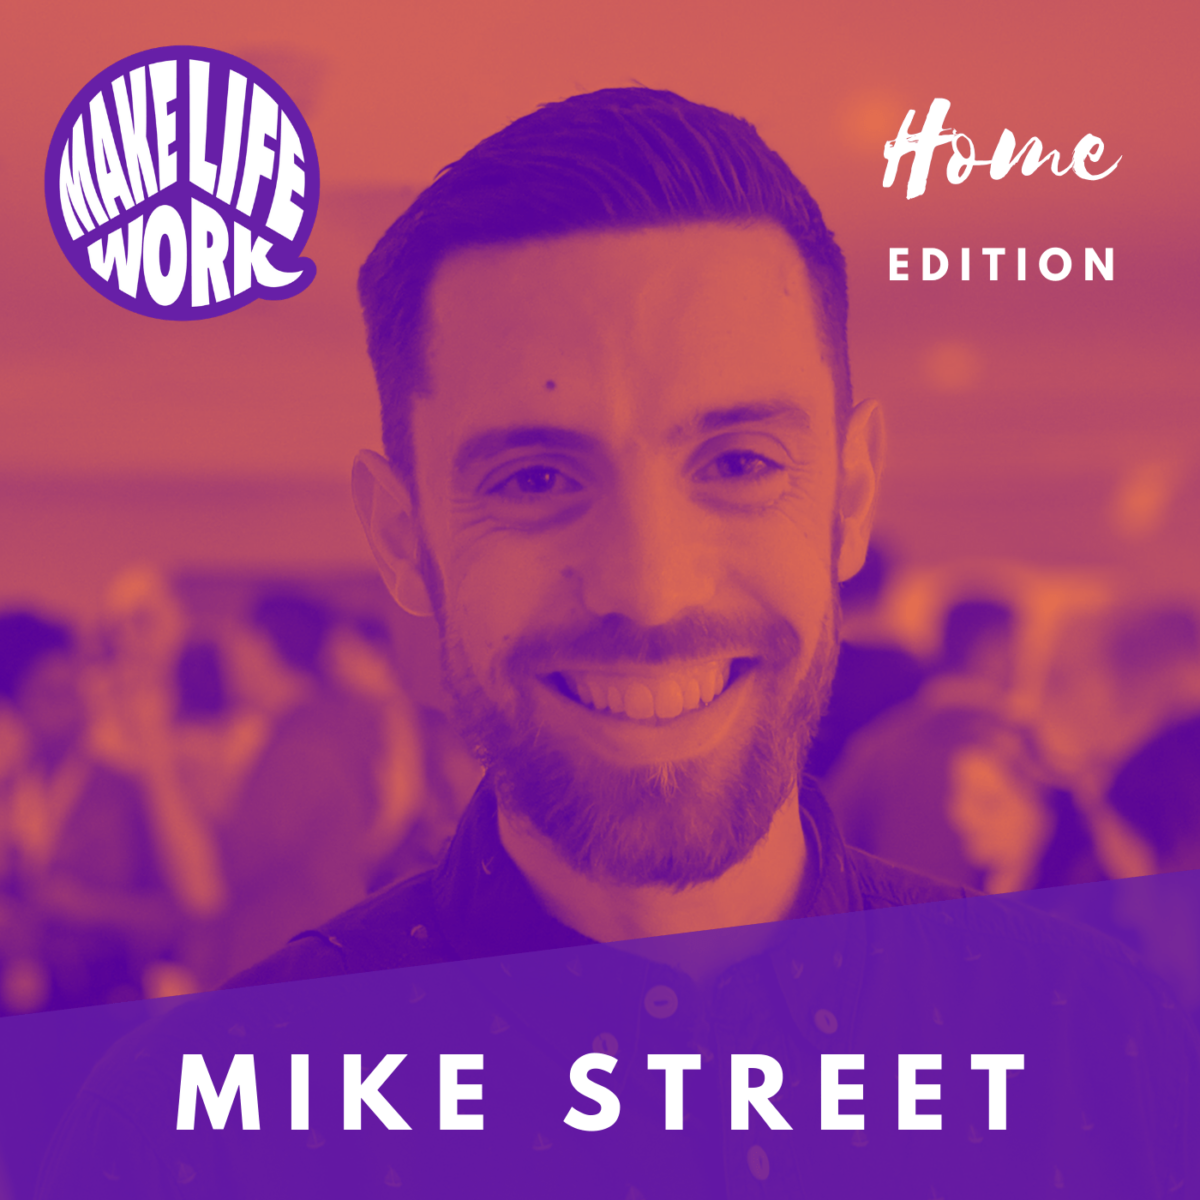 Make Life Work 15 - Mike Street